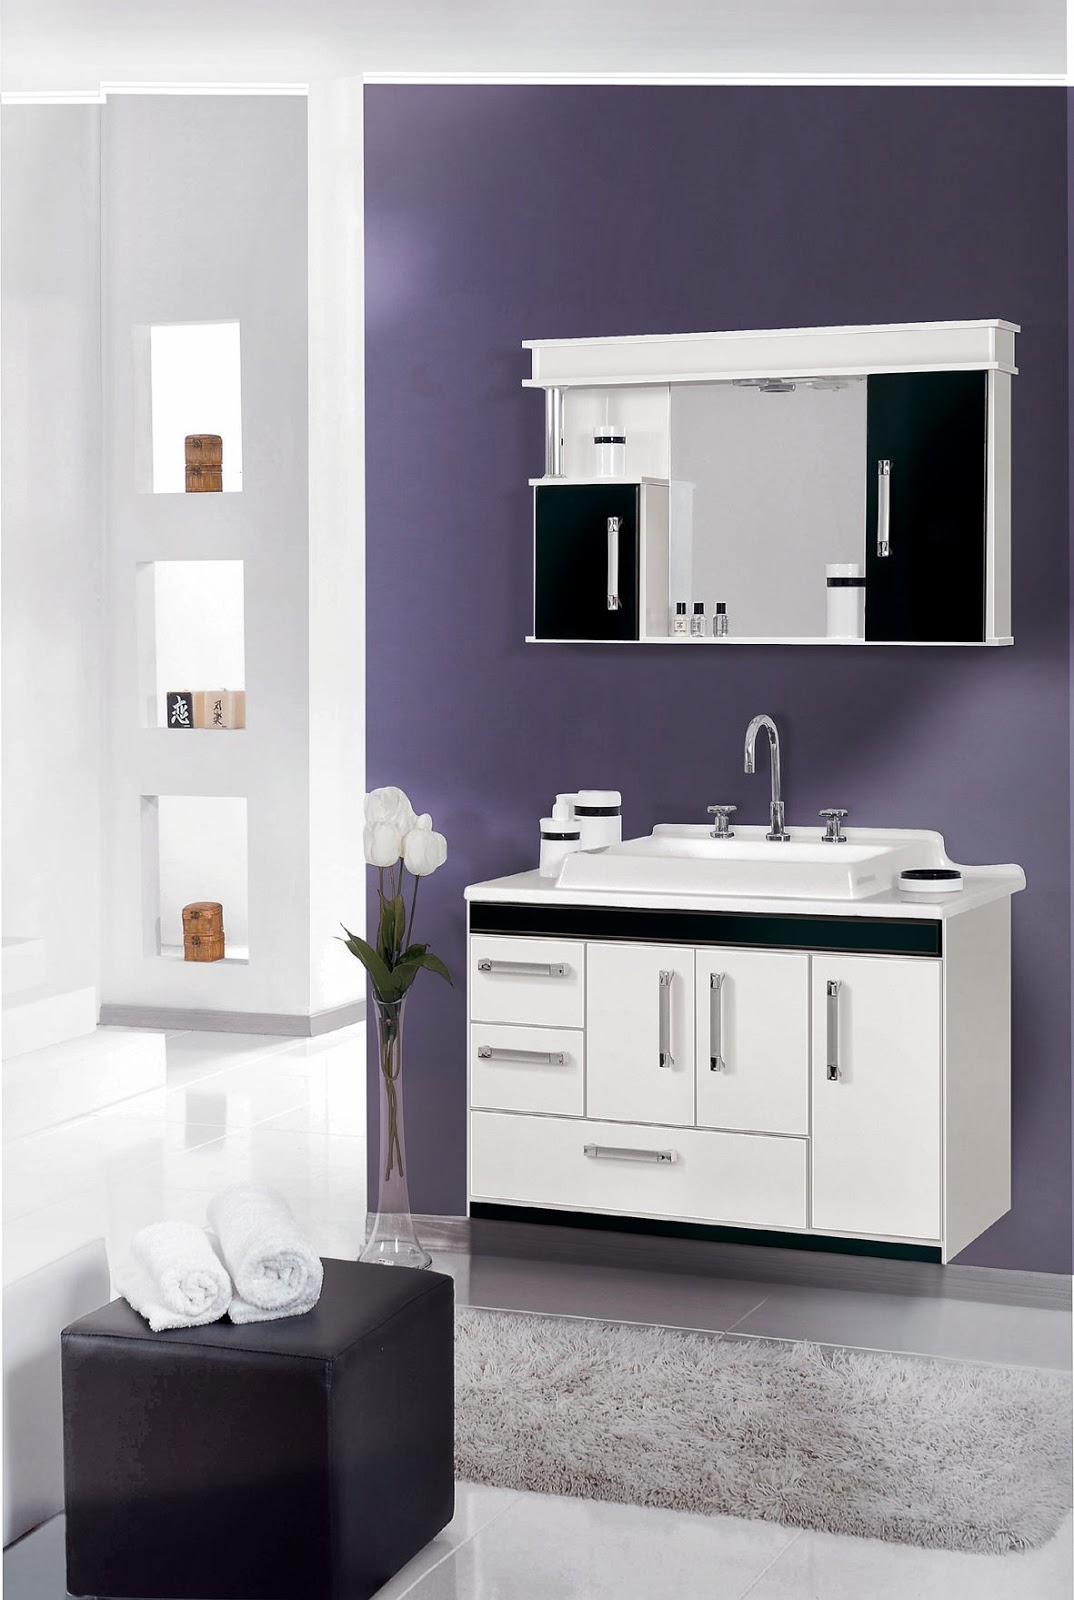 clean-bathroom_with_sink_cabinet_towel_image